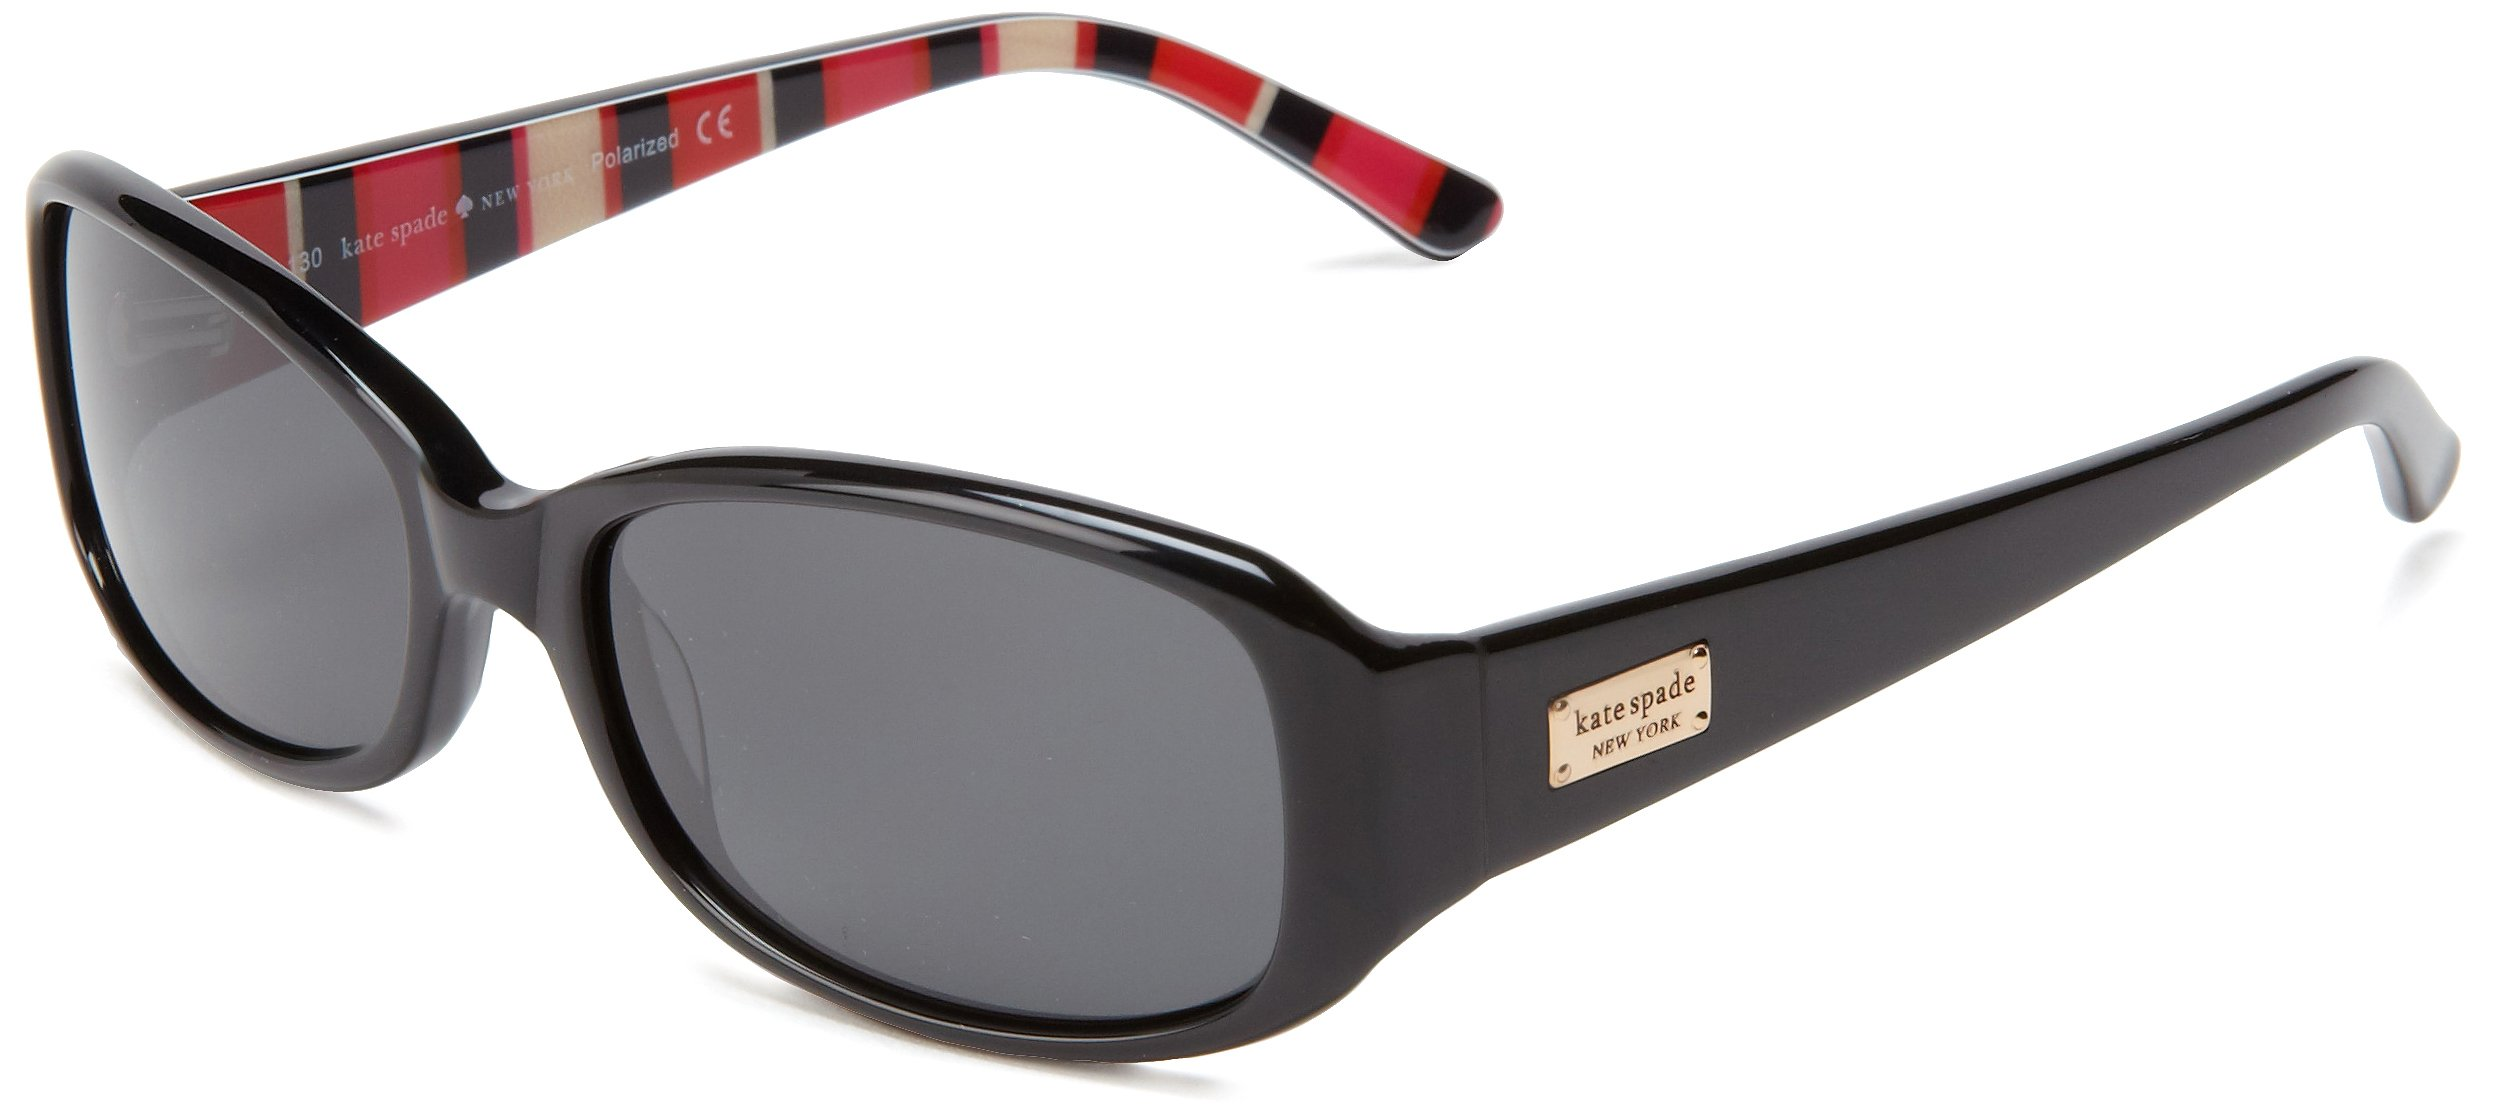 Kate Spade Paxtons Rectangular Sunglasses,Black Stripe,53 mm